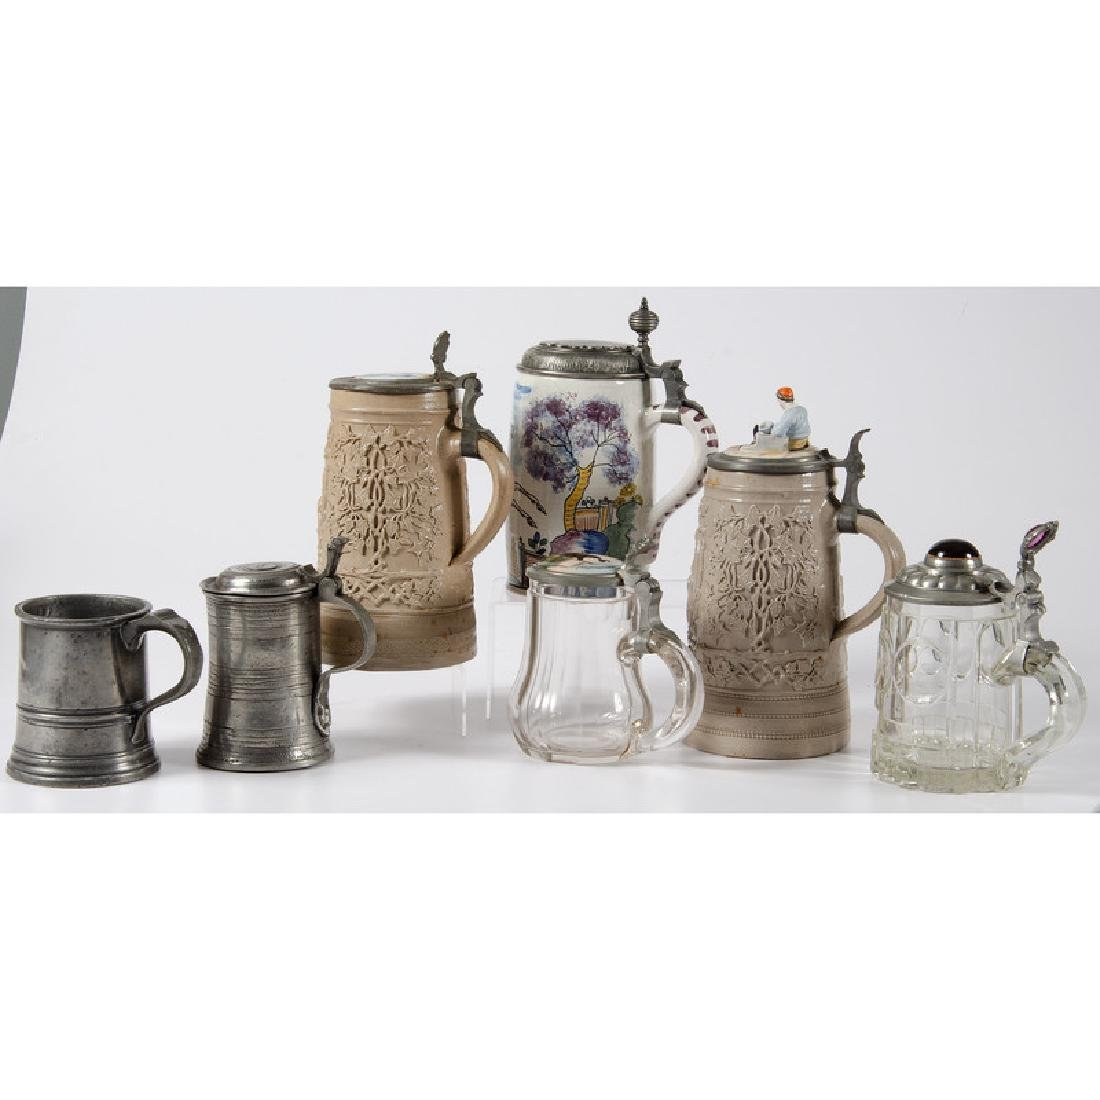 Ceramic, Glass and Pewter Steins - 3